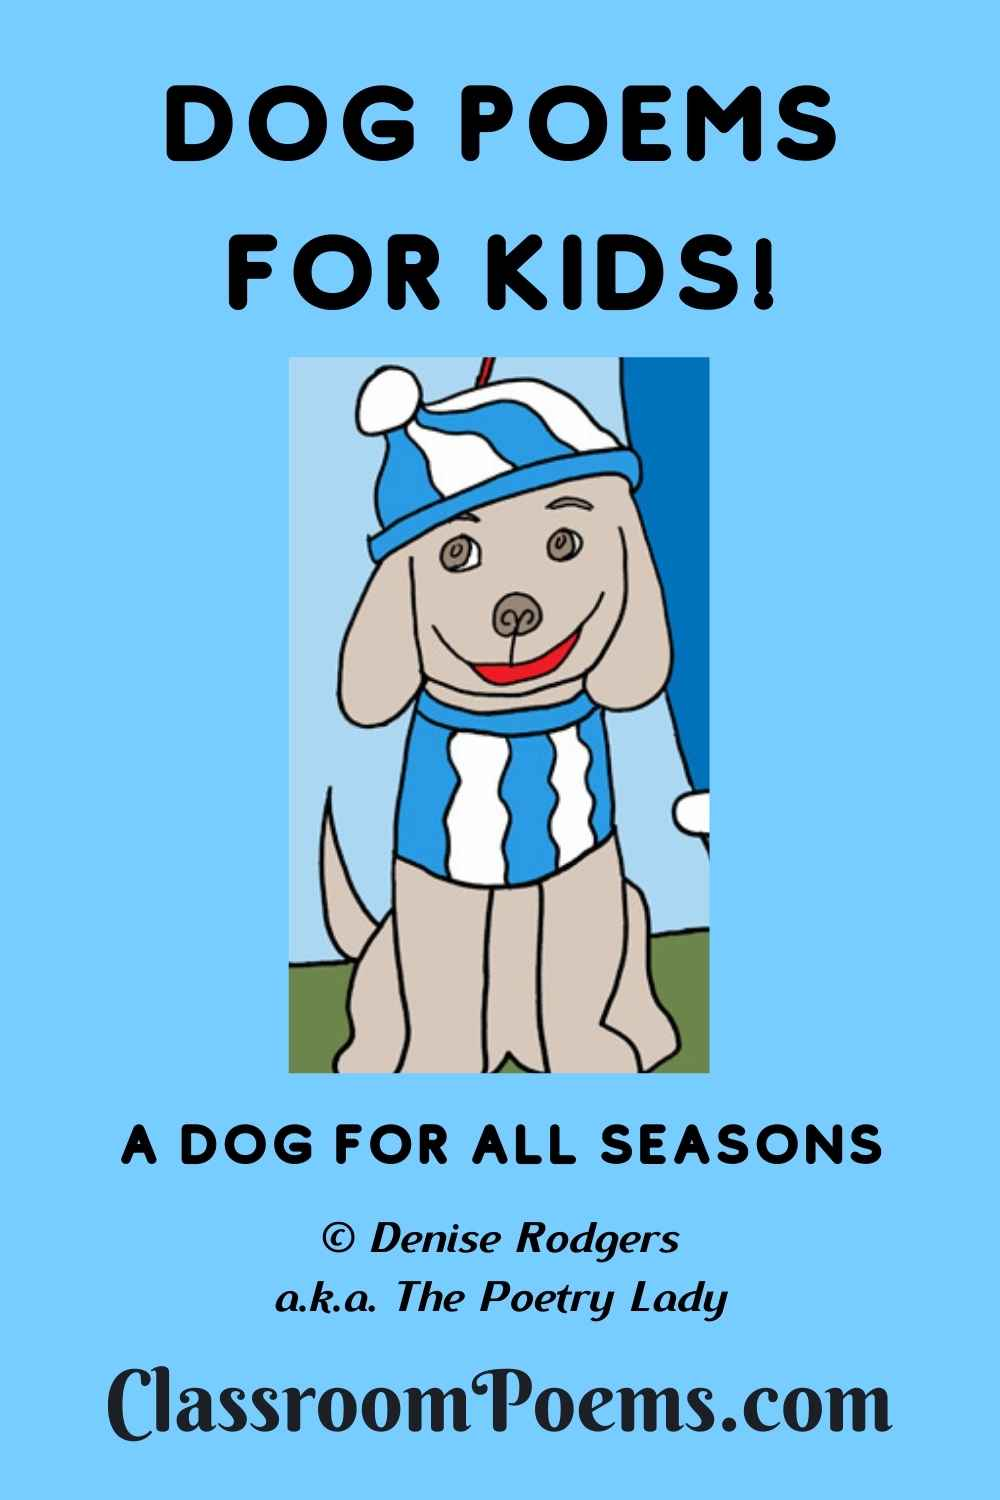 A DOG FOR ALL SEASONS, a funny dog poem for kids by Poetry Lady Denise Rodgers on ClassroomPoems.com.